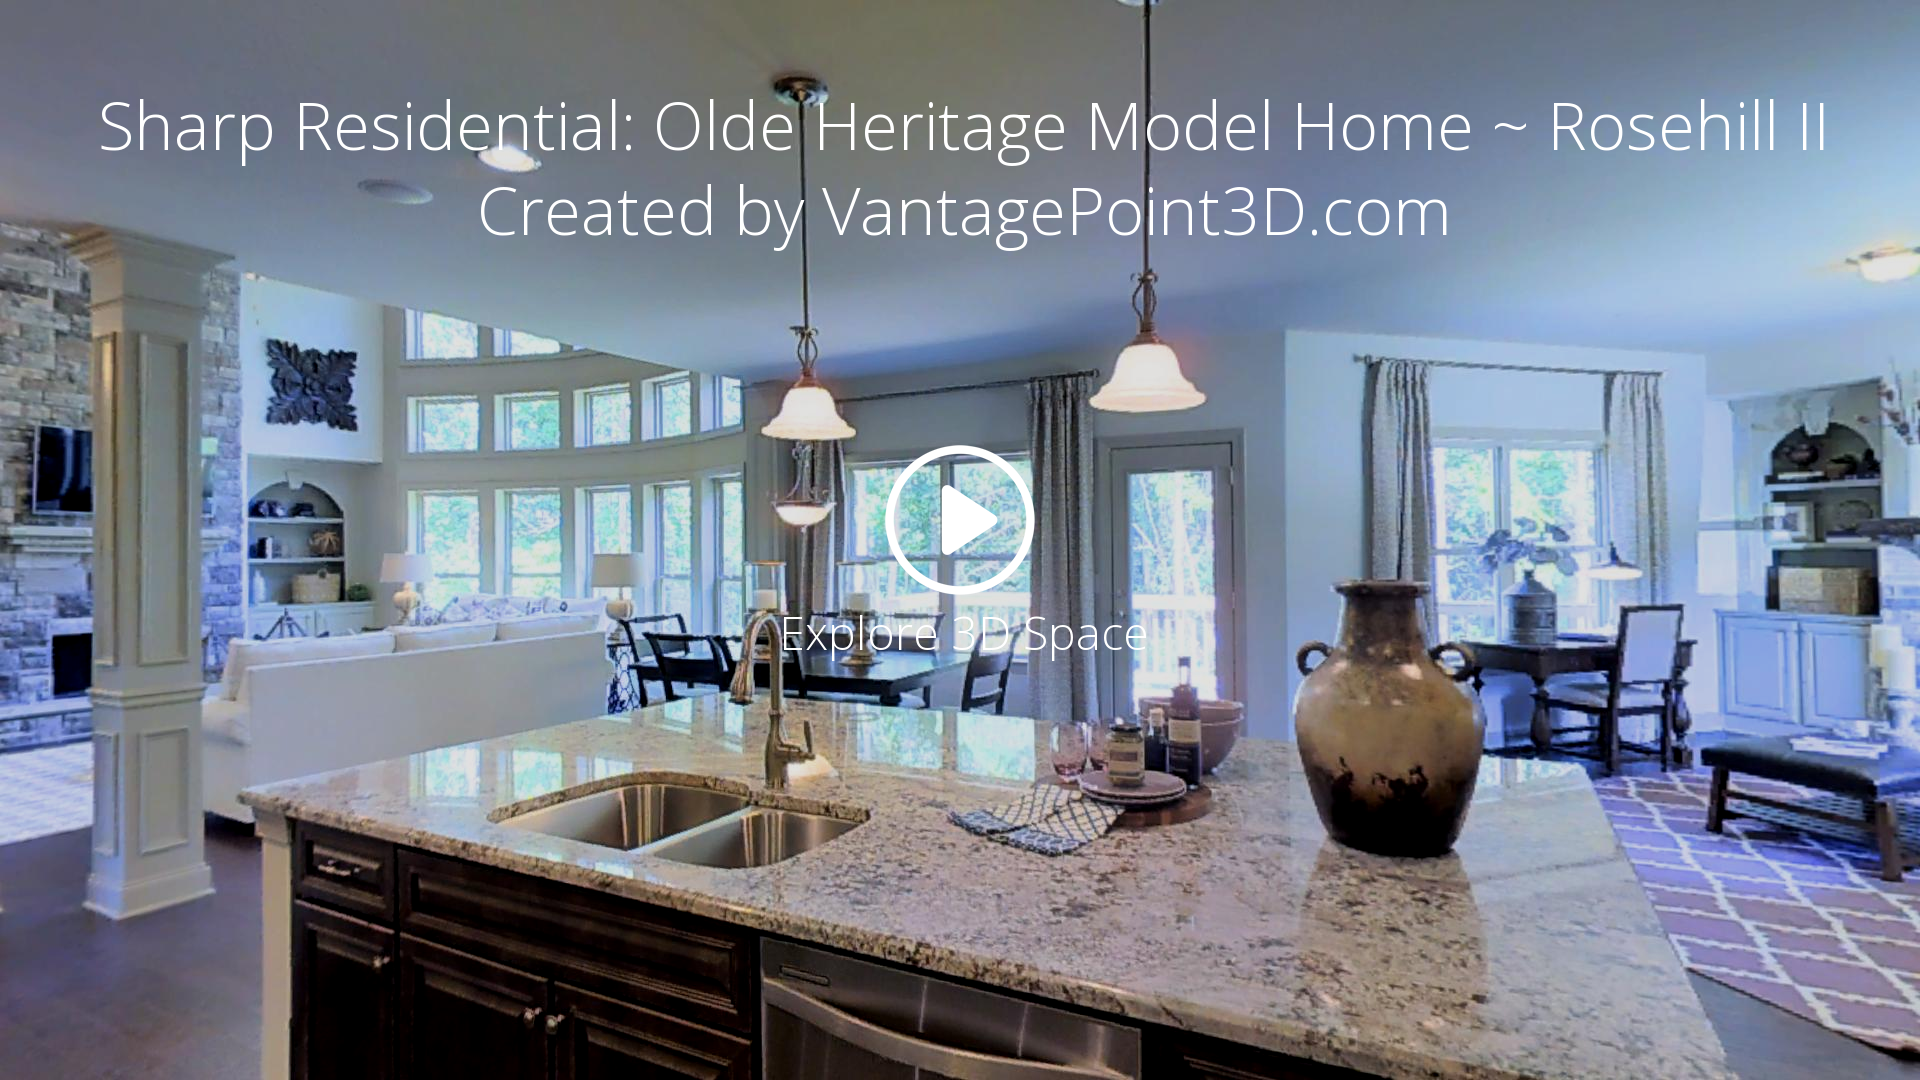 Sharp Residential: Olde Heritage Model Home ~ Rosehill II ...